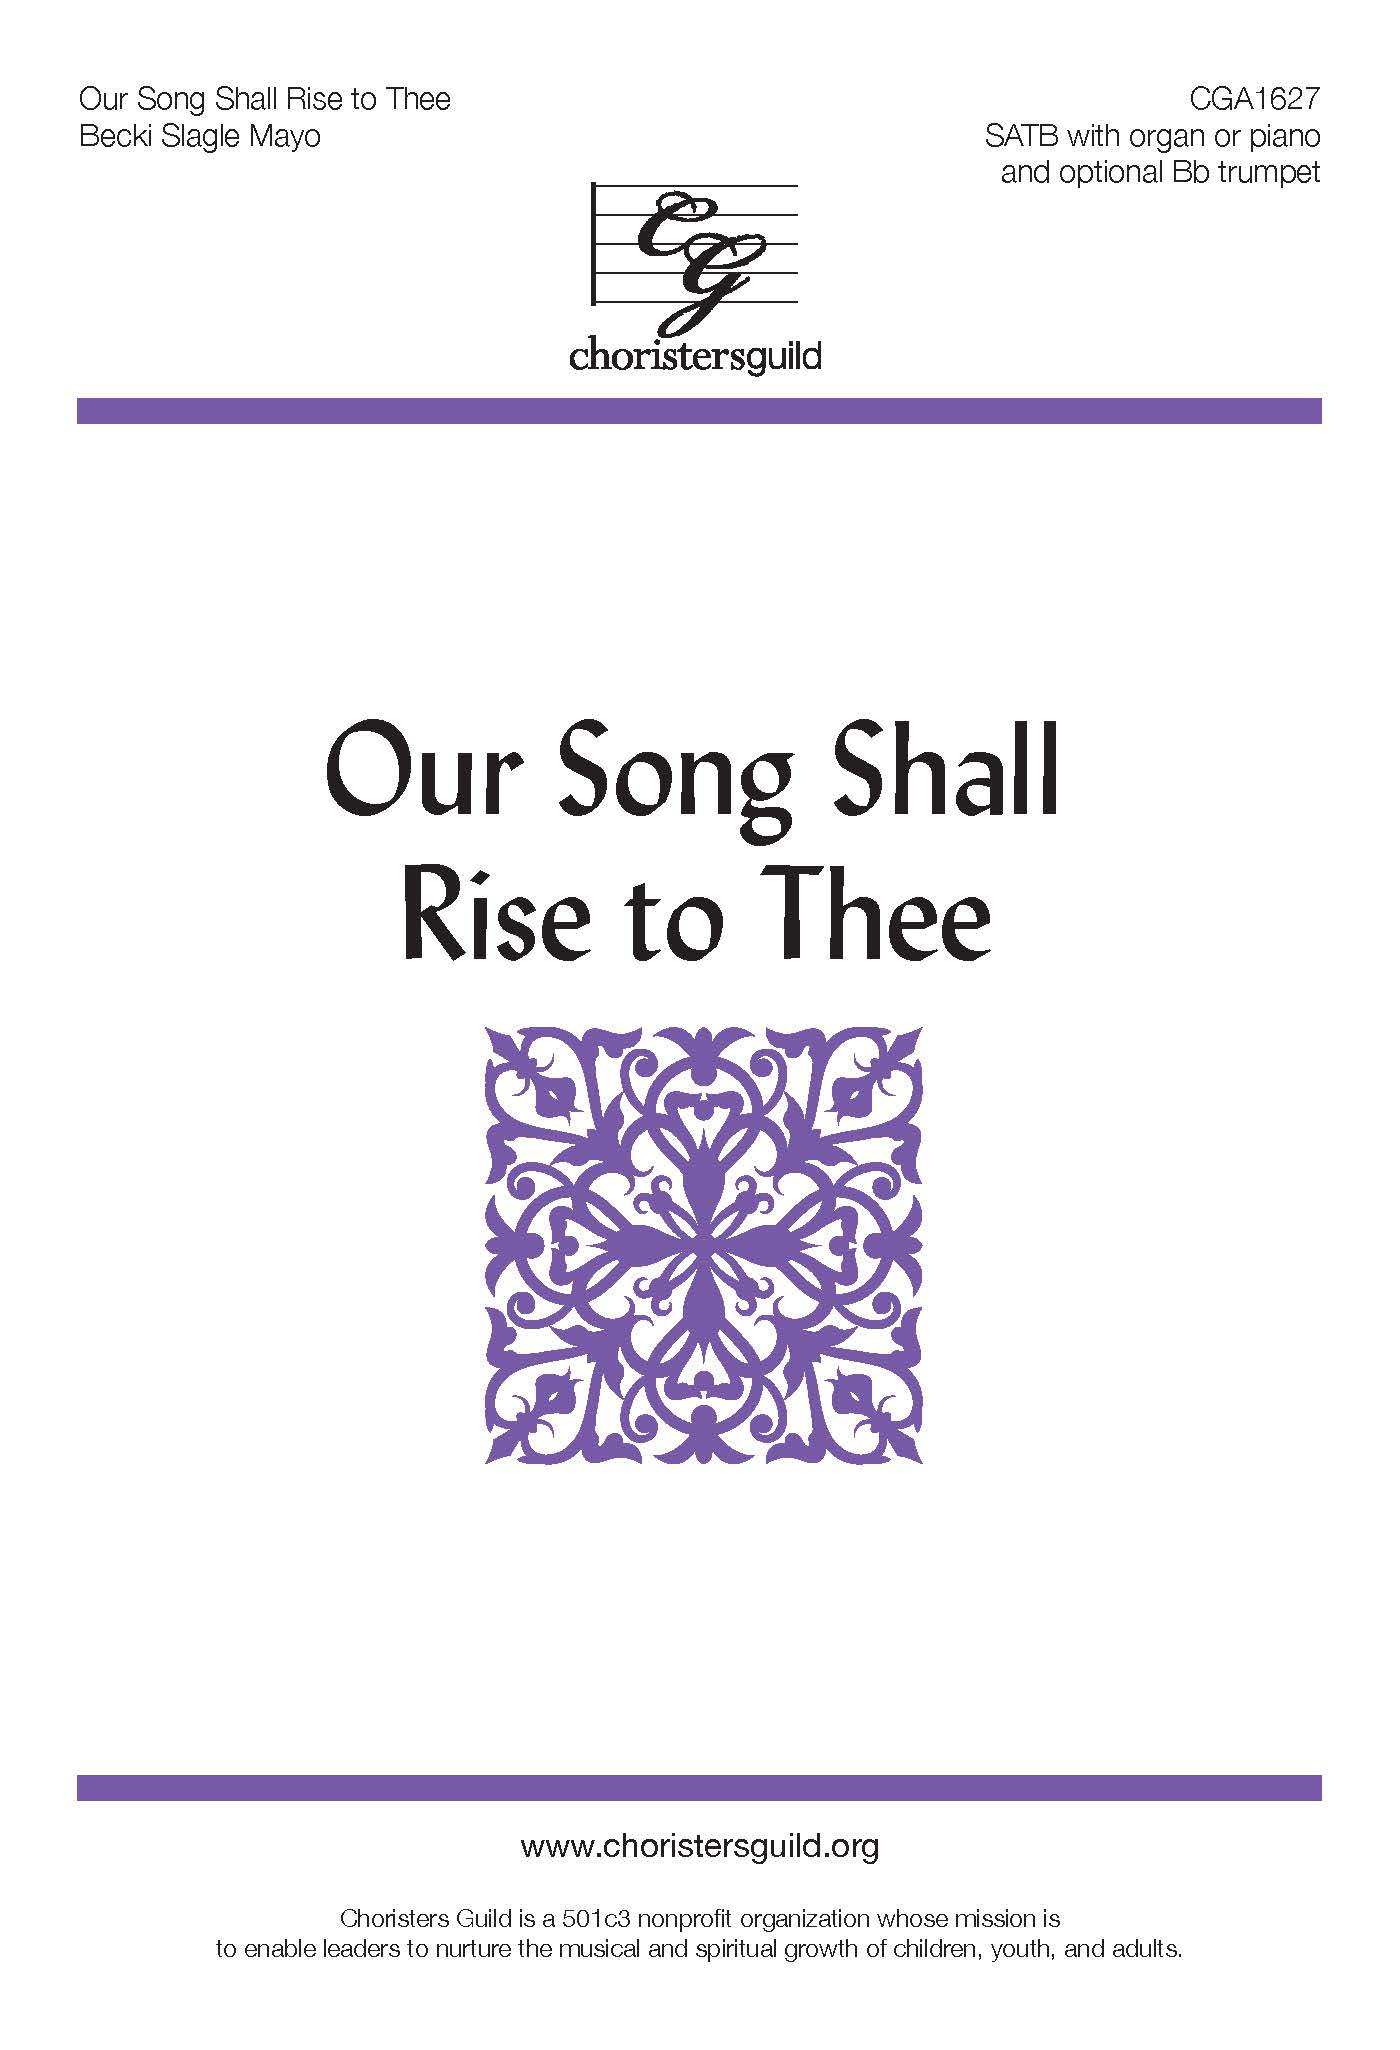 Our Song Shall Rise to Thee - SATB